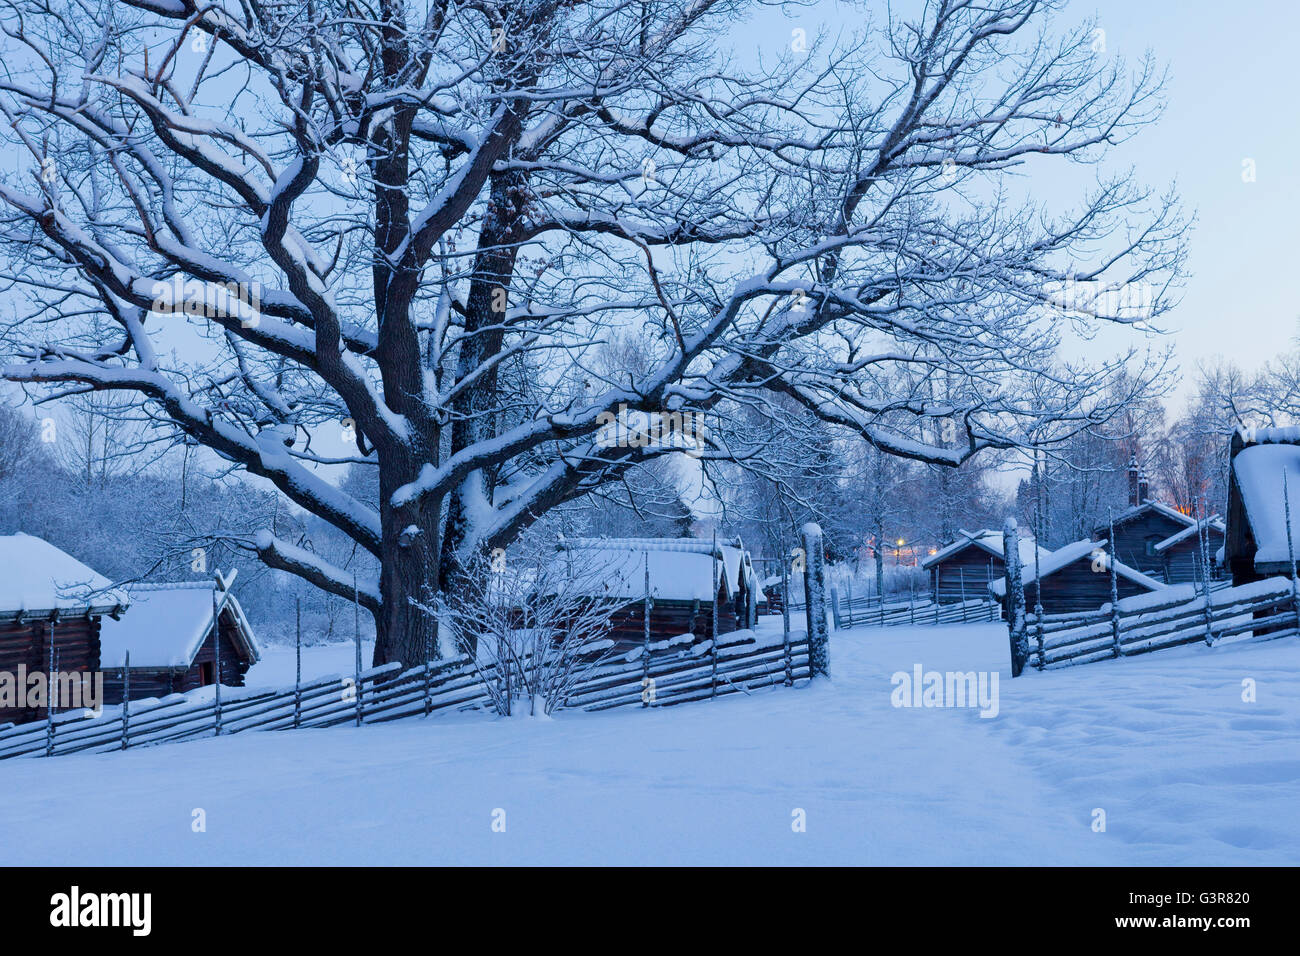 Sweden, Dalarna, Mora, Wooden houses covered with snow - Stock Image